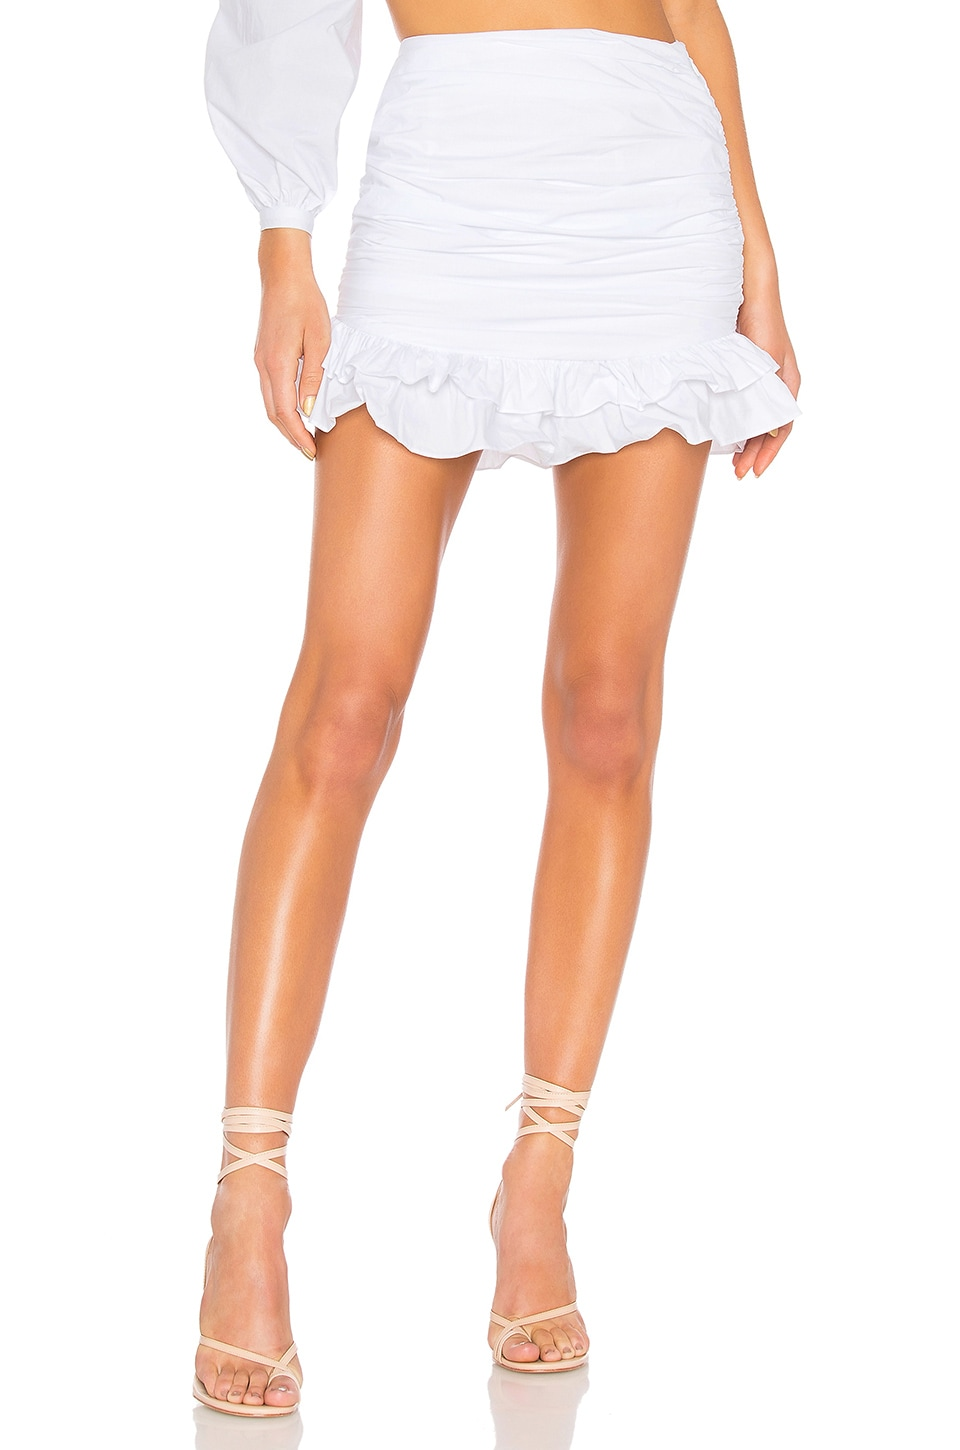 Lovers + Friends Brooke Skirt in White